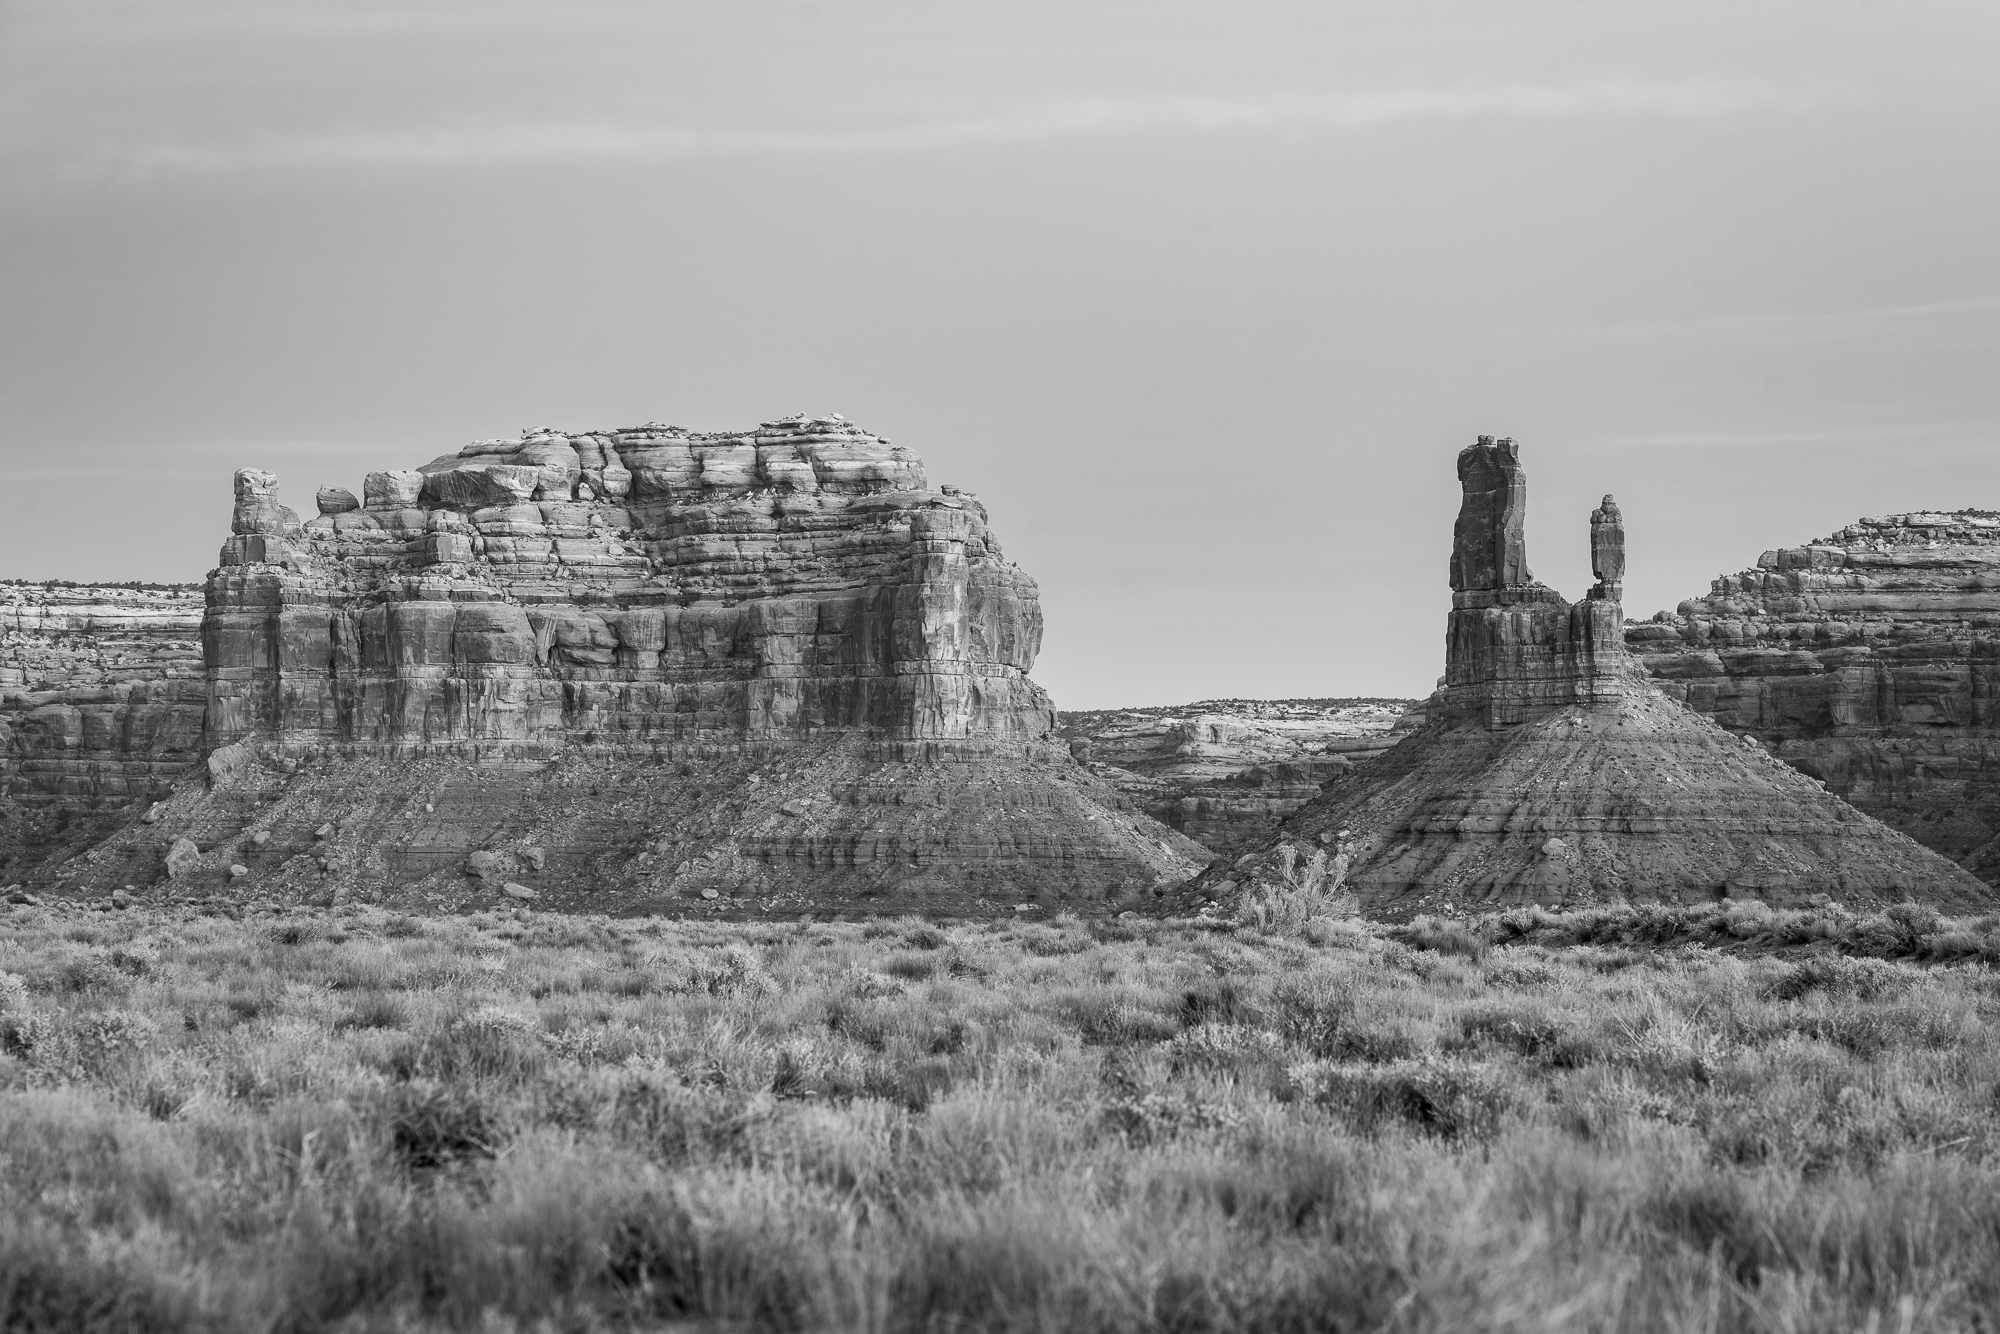 bears ears buttes - black and white, no filter.  not really a very interesting image at this point.